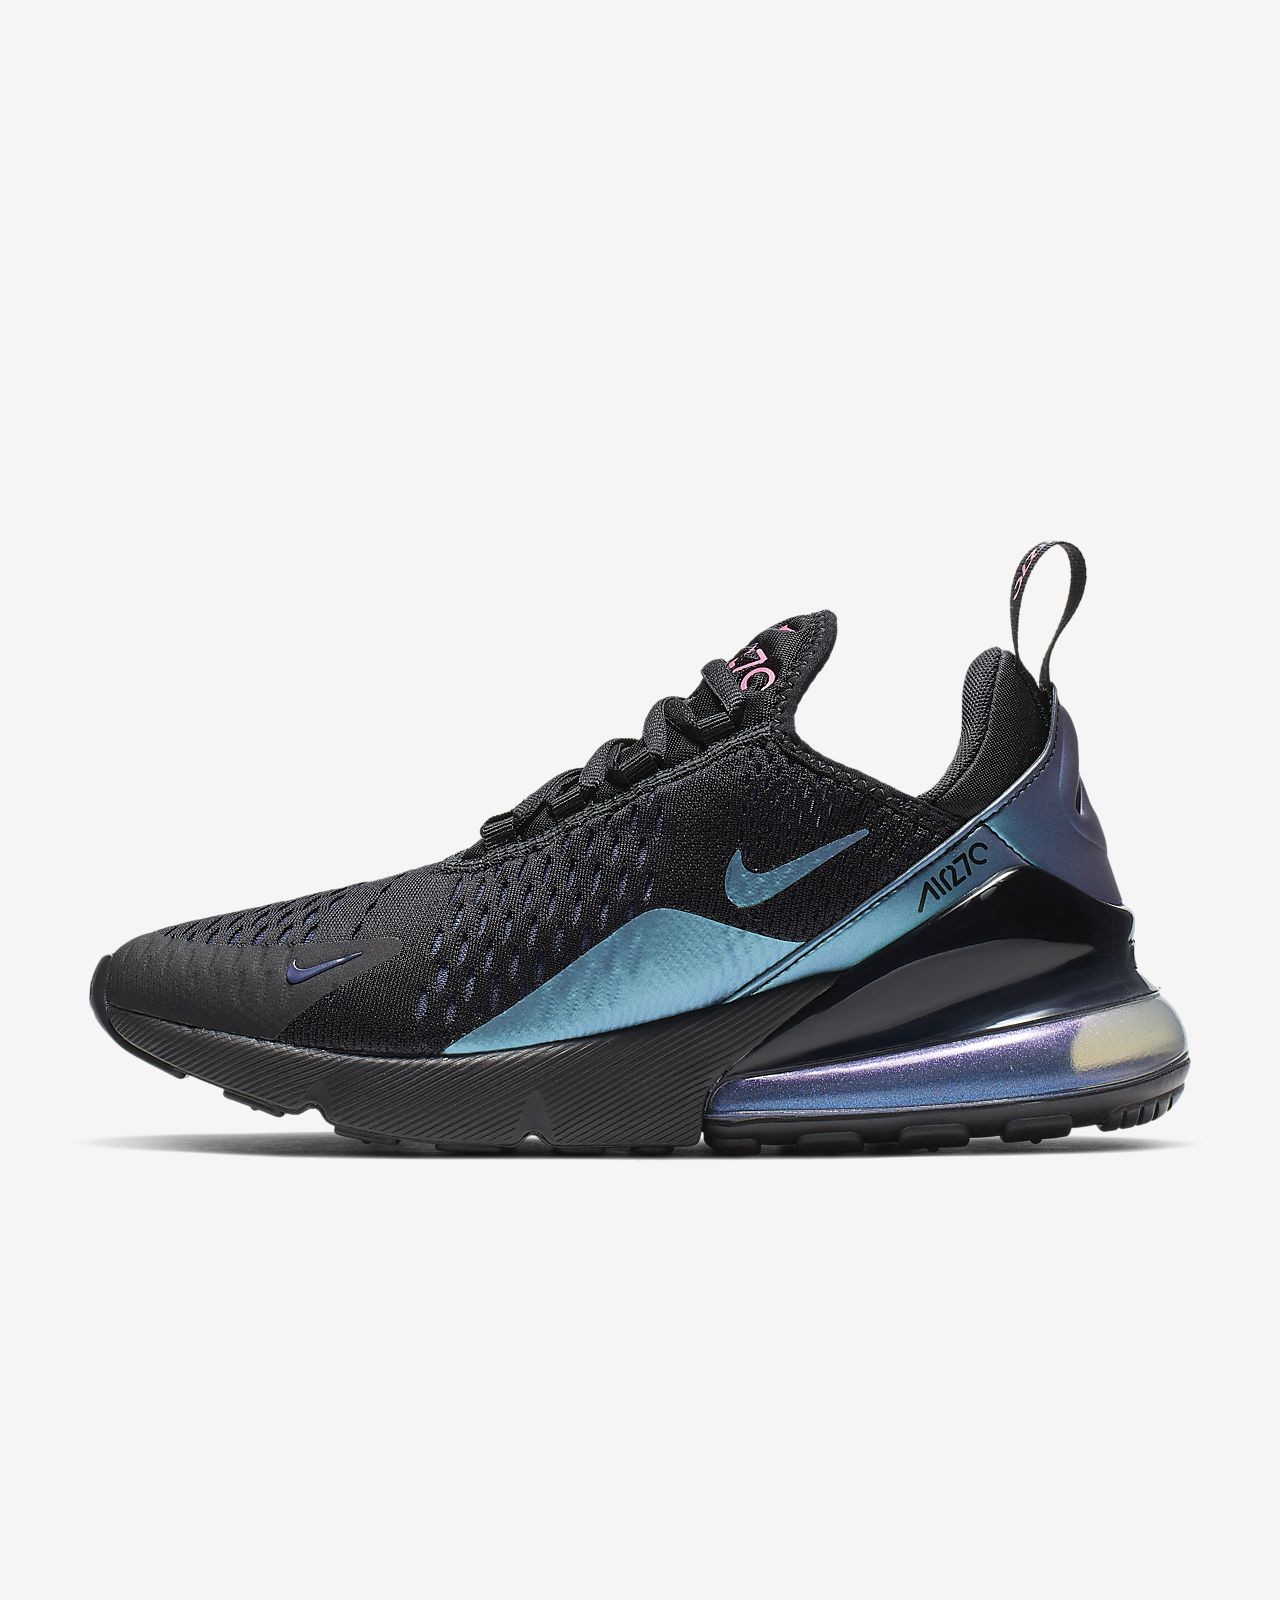 official photos 8288f 2c7f6 ... Nike Air Max 270 Zapatillas - Mujer